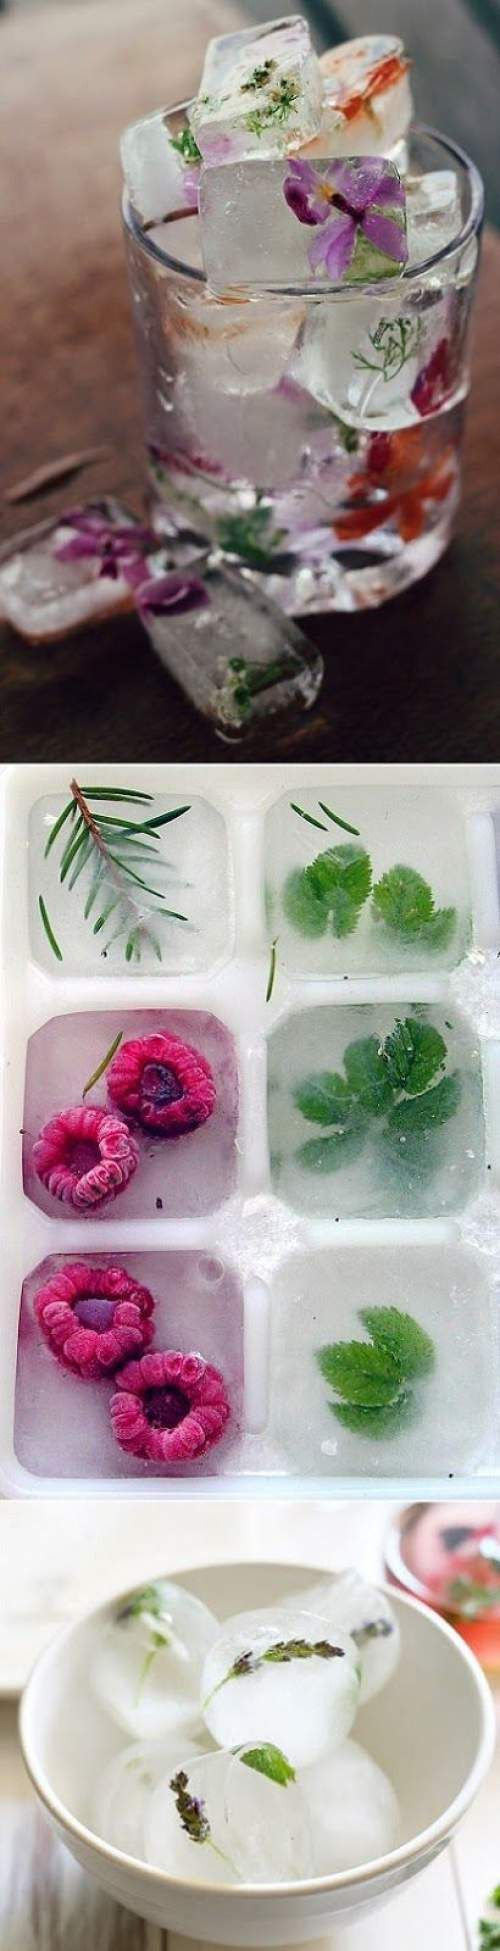 Looking forward to spring flowers? How about sipping cool, refreshing beverages in the outdoors? Try these creative twists for your ice cube trays - capturing the beauties of spring through frozen berries, flowers, and herbs right in your drinks. Learn how to make them here!